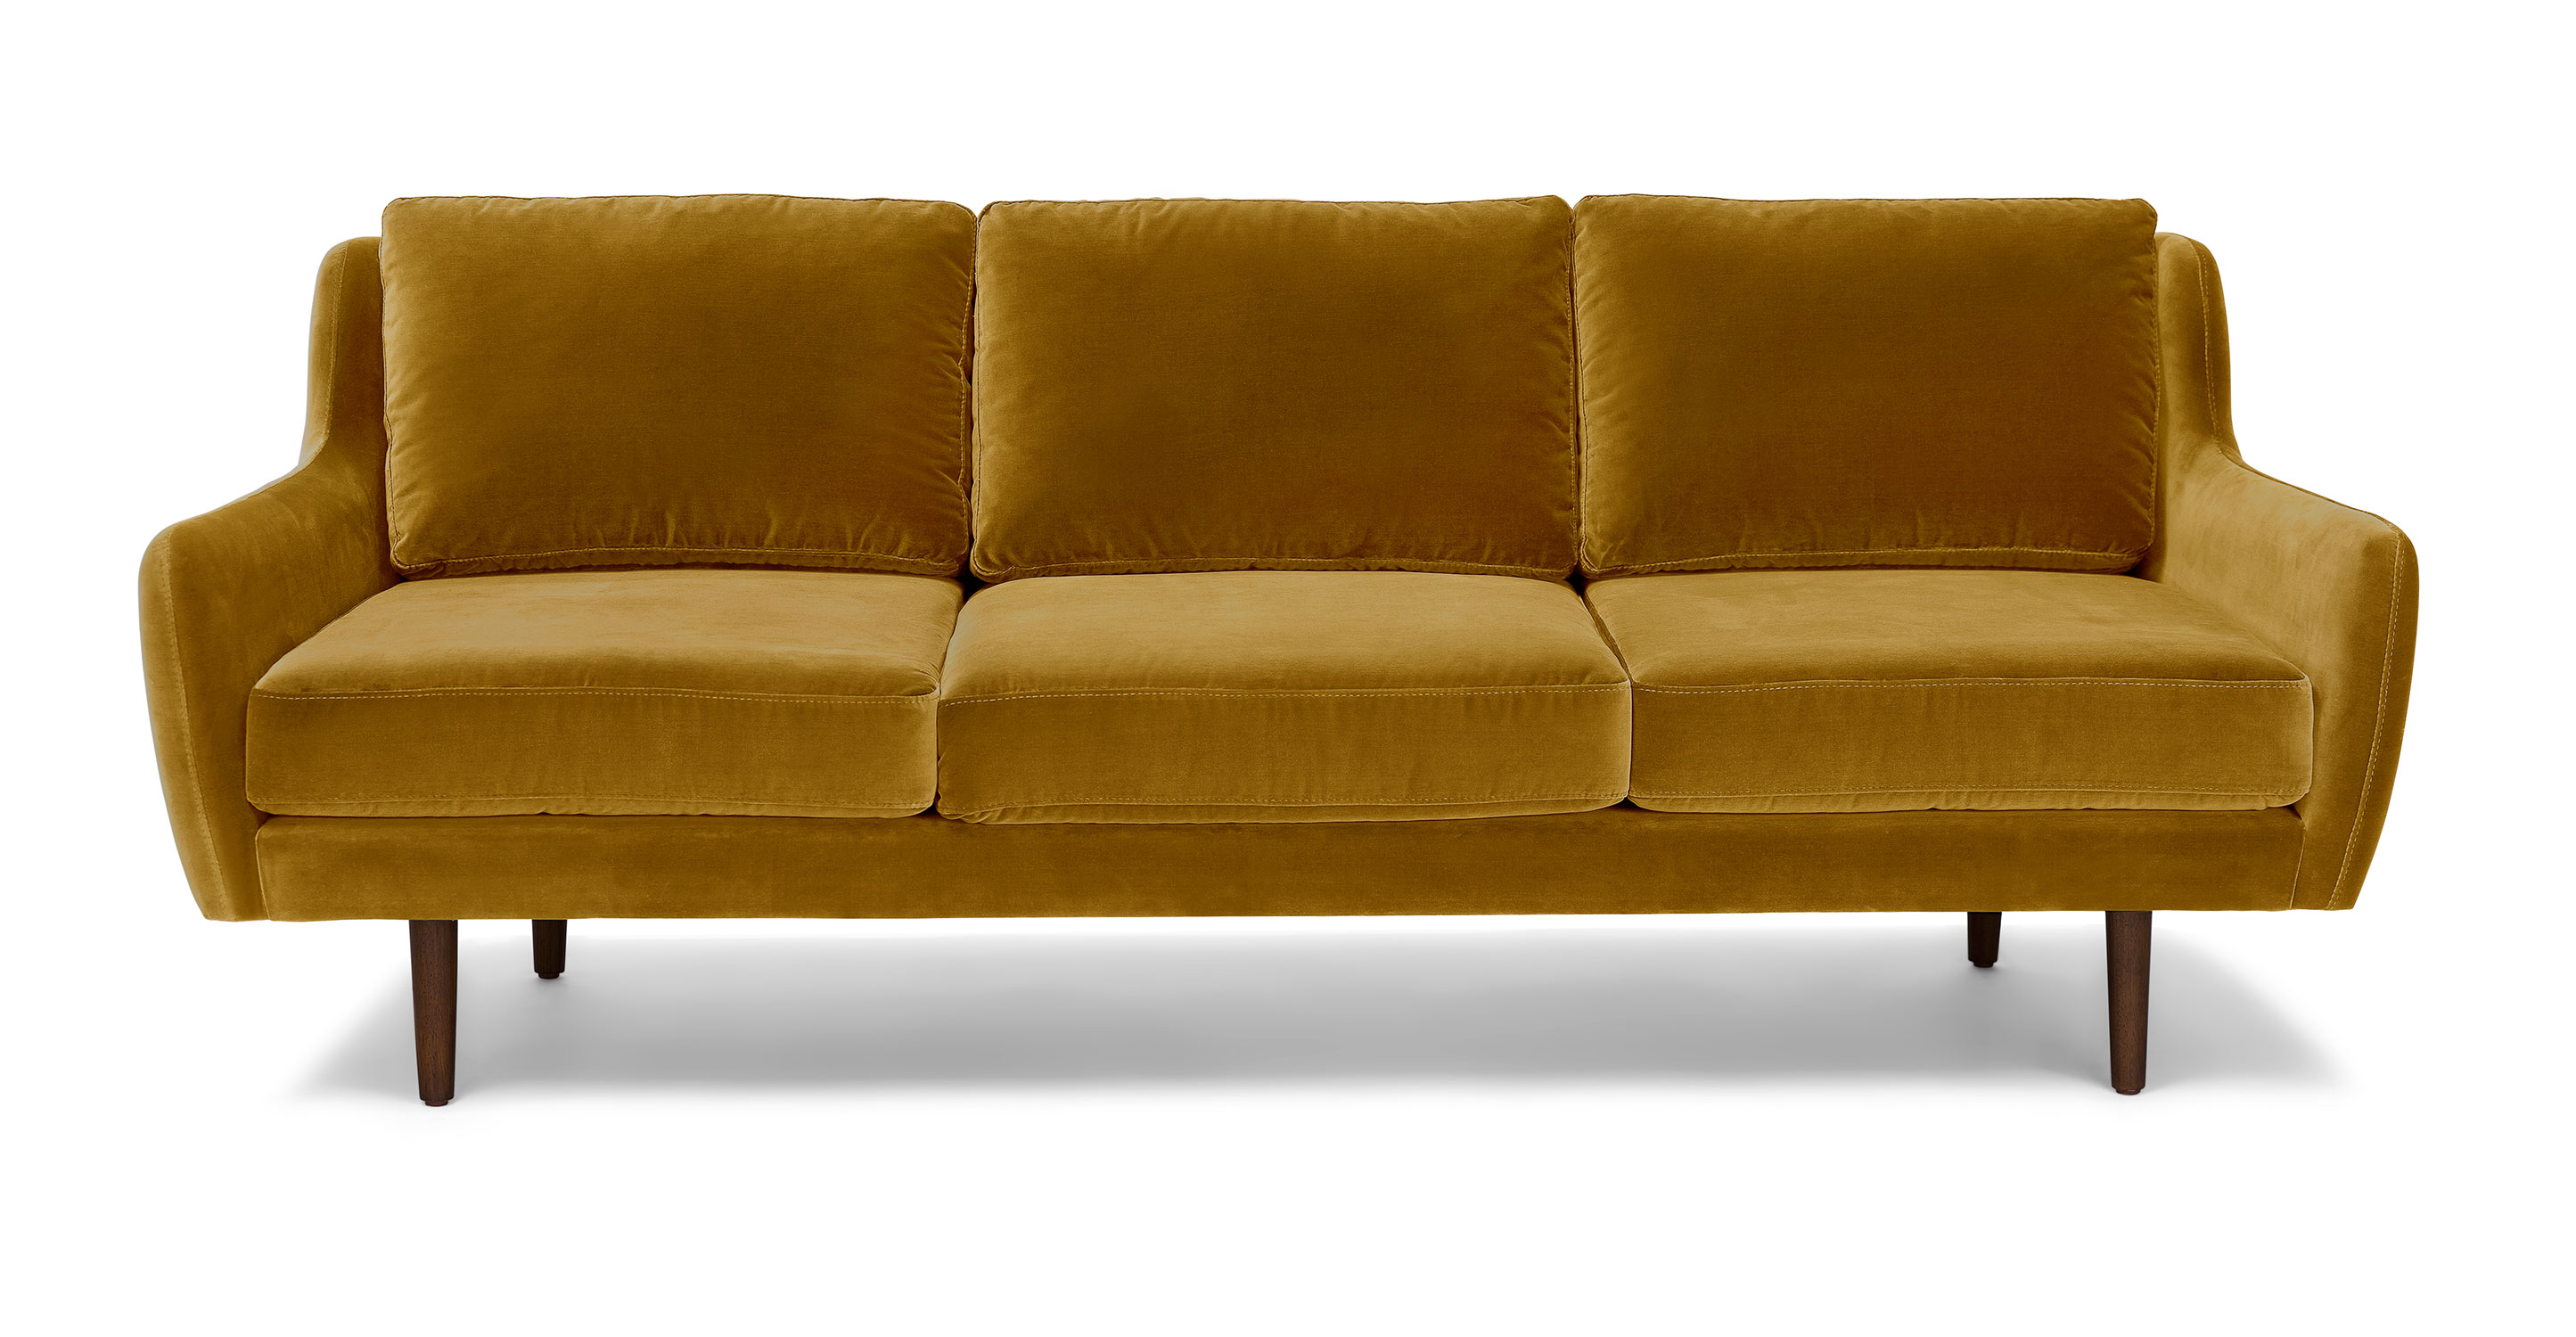 Sofas And Stuff Reviews Gold Velvet Sofa 3 Seater Walnut Wood Legs Article Matrix Modern Furniture